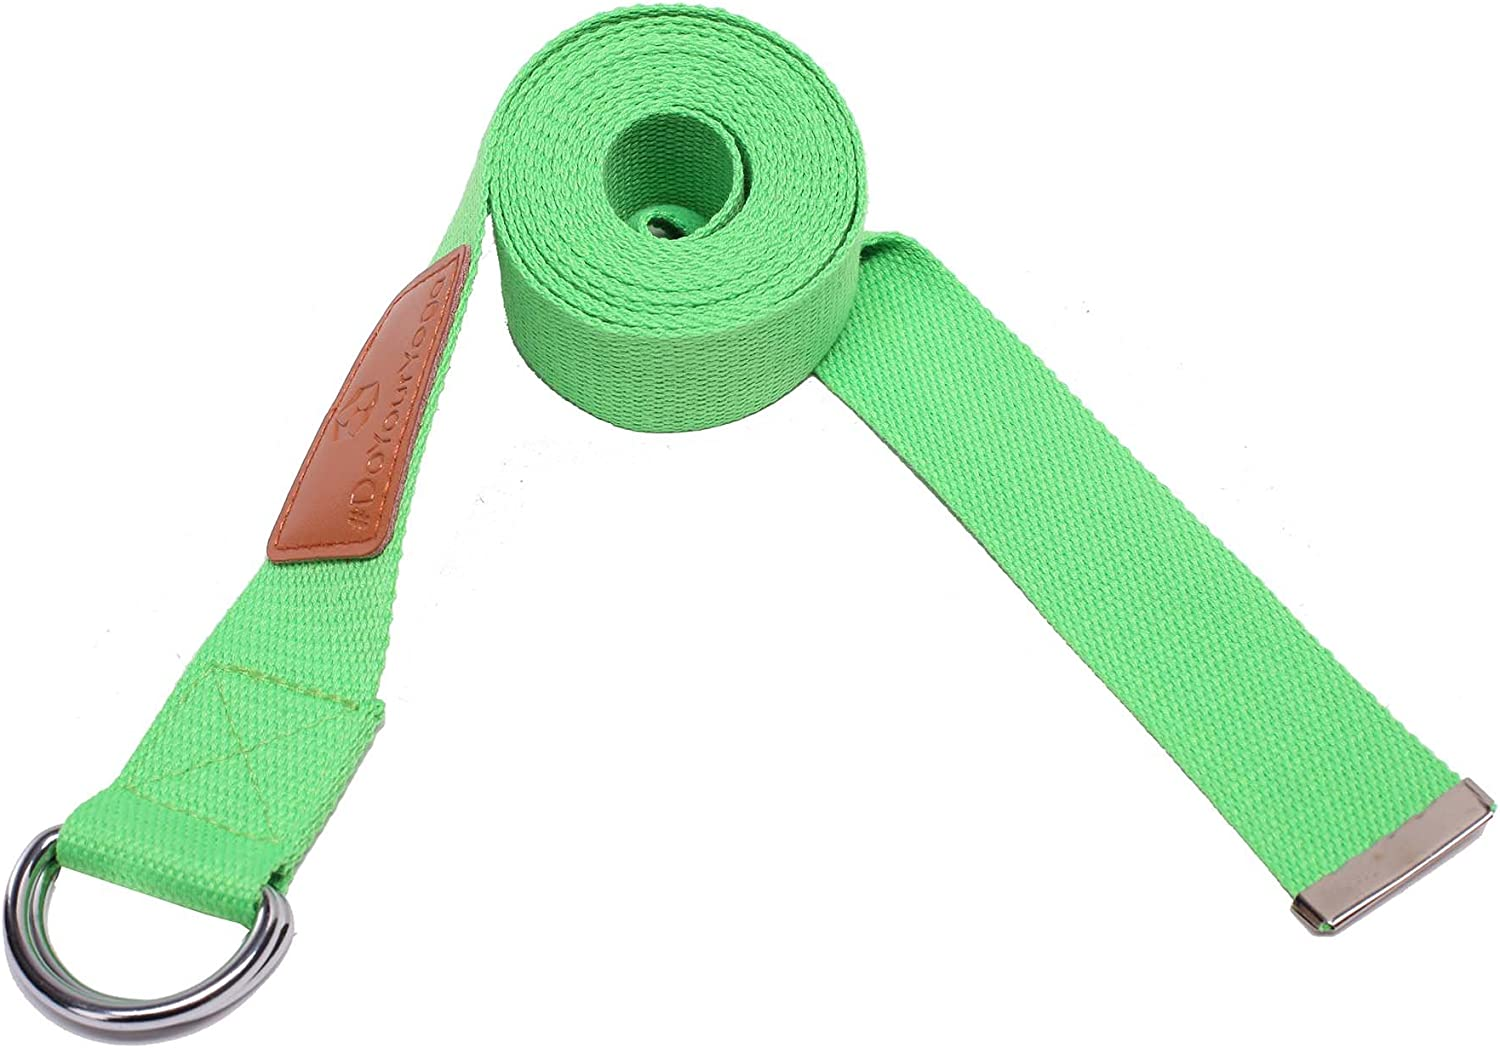 260 x 3.8 cm #DoYourYoga yoga belt of with sturdy metal ring fastener perfect for pilates stretching holding poses improving flexibility /& physical therapy//green black blue pink grey violet red